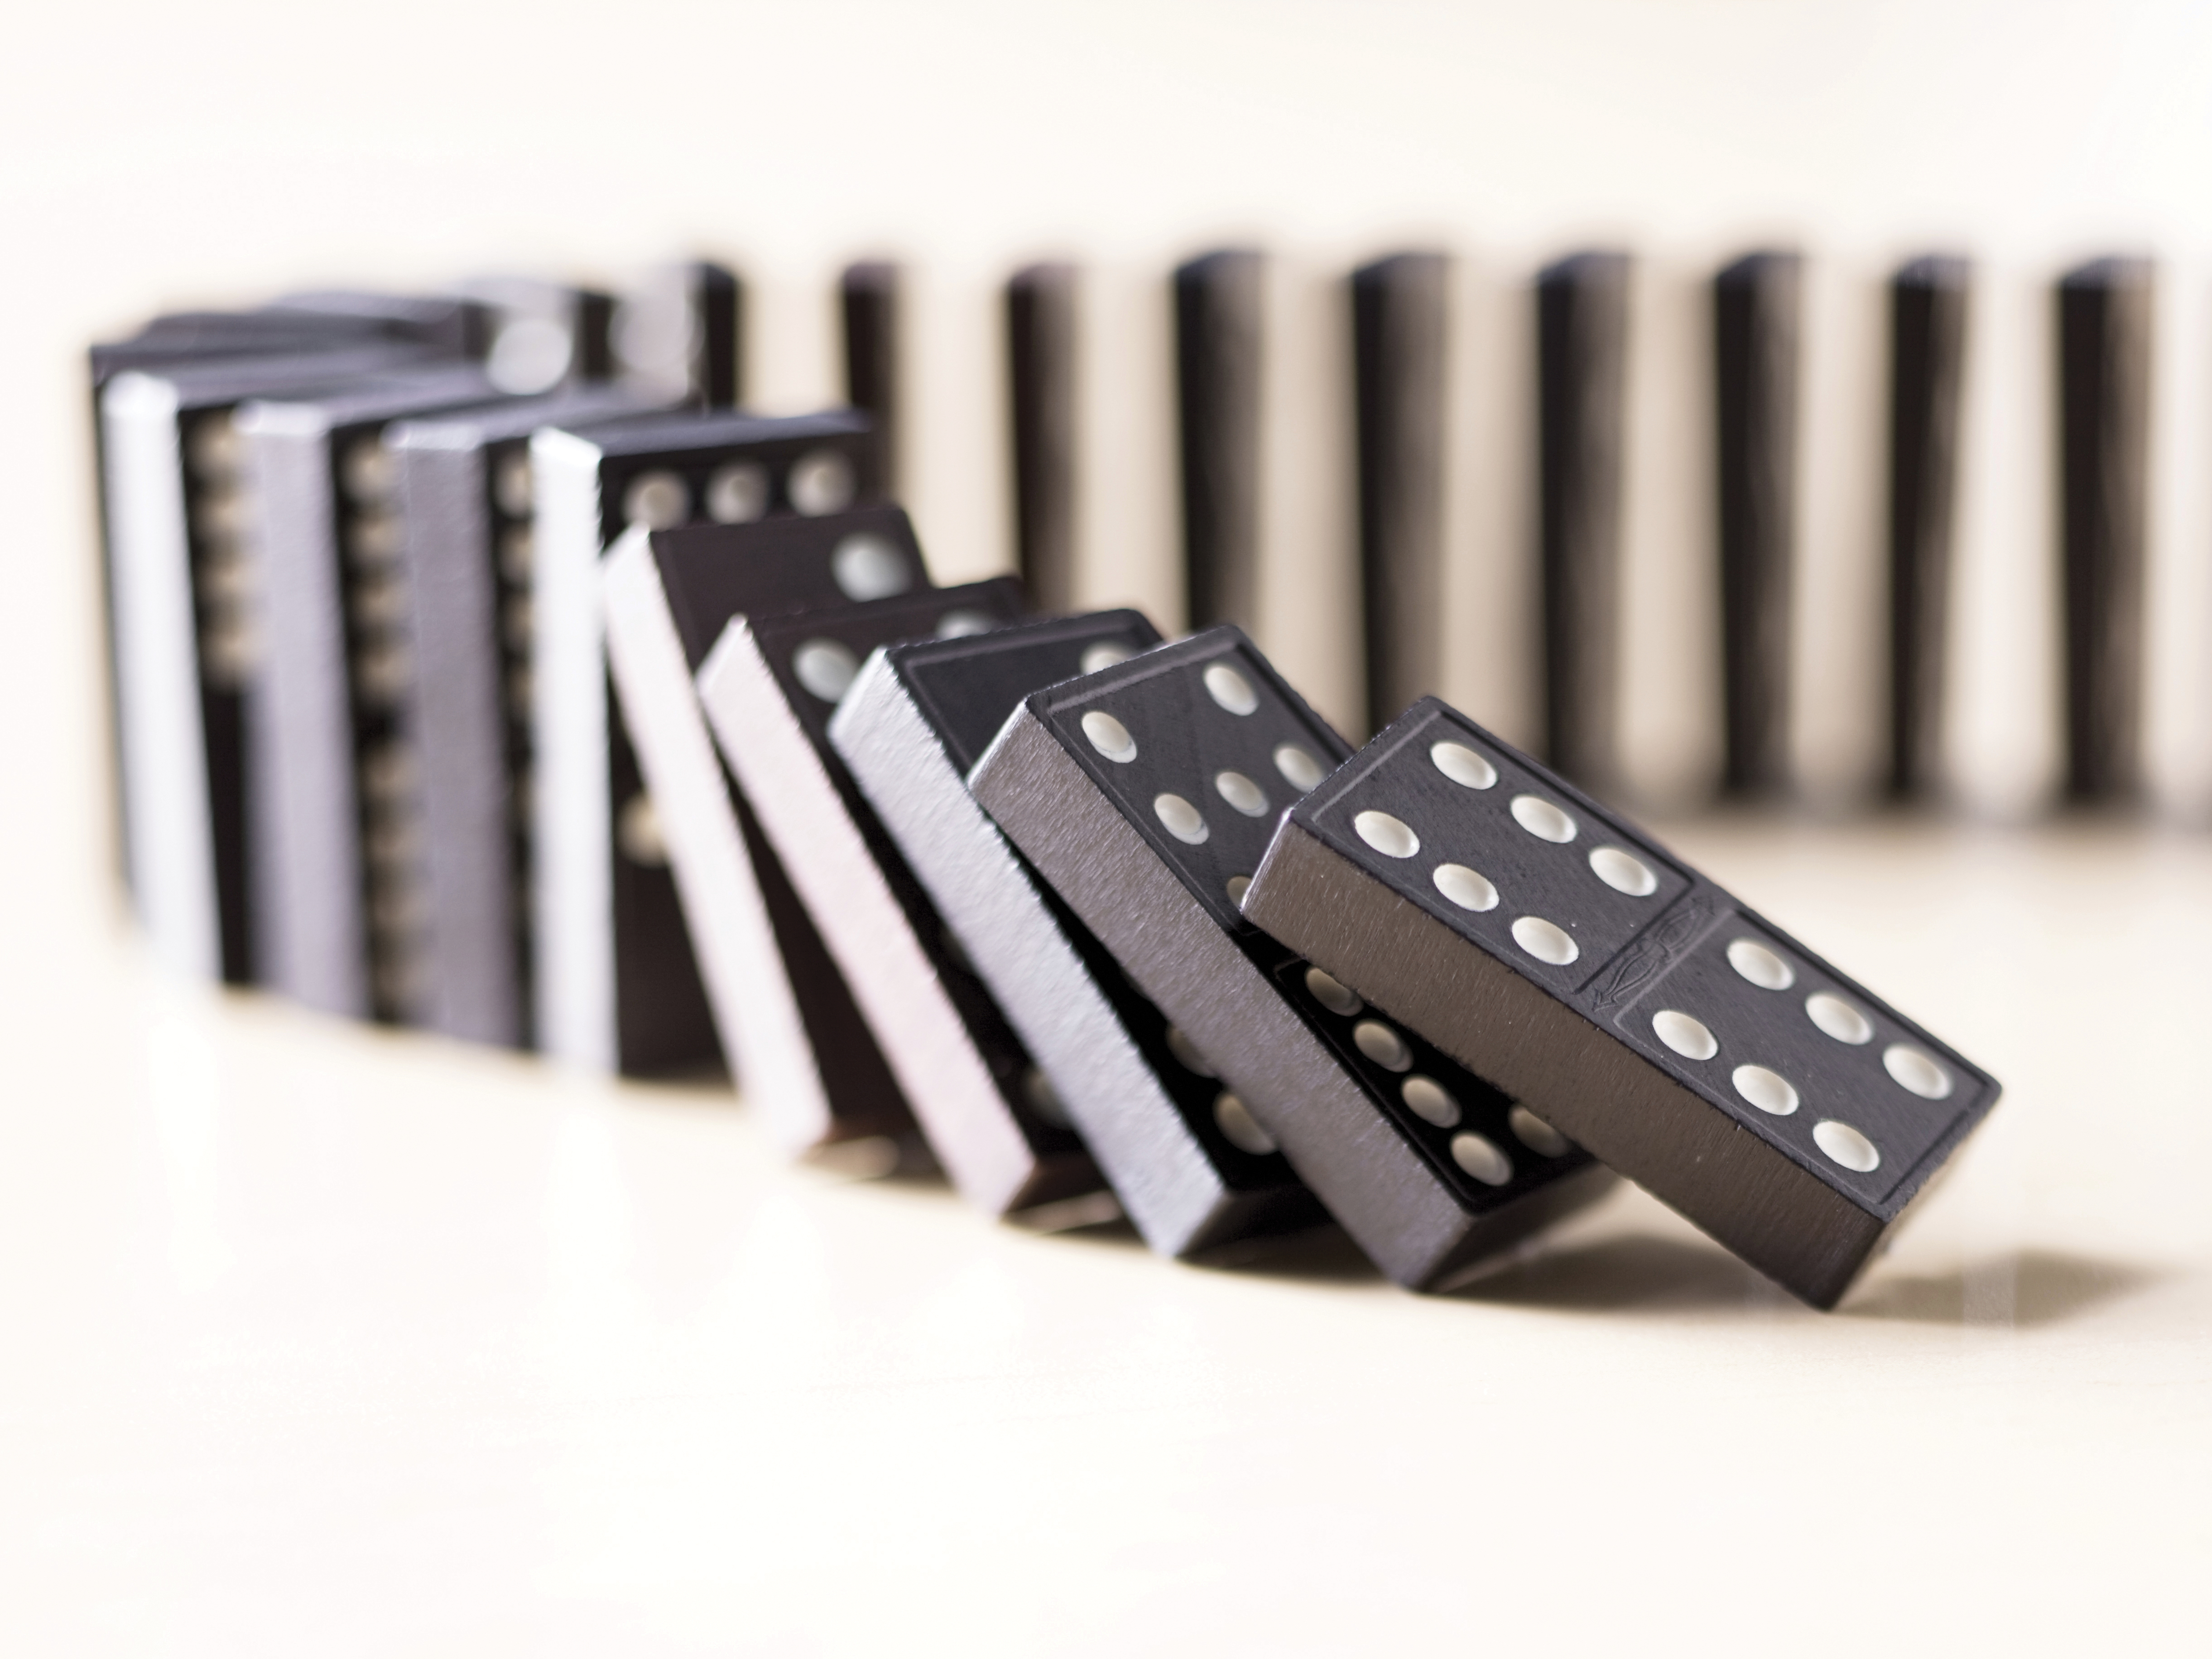 A row of dominoes tipping over in succession.